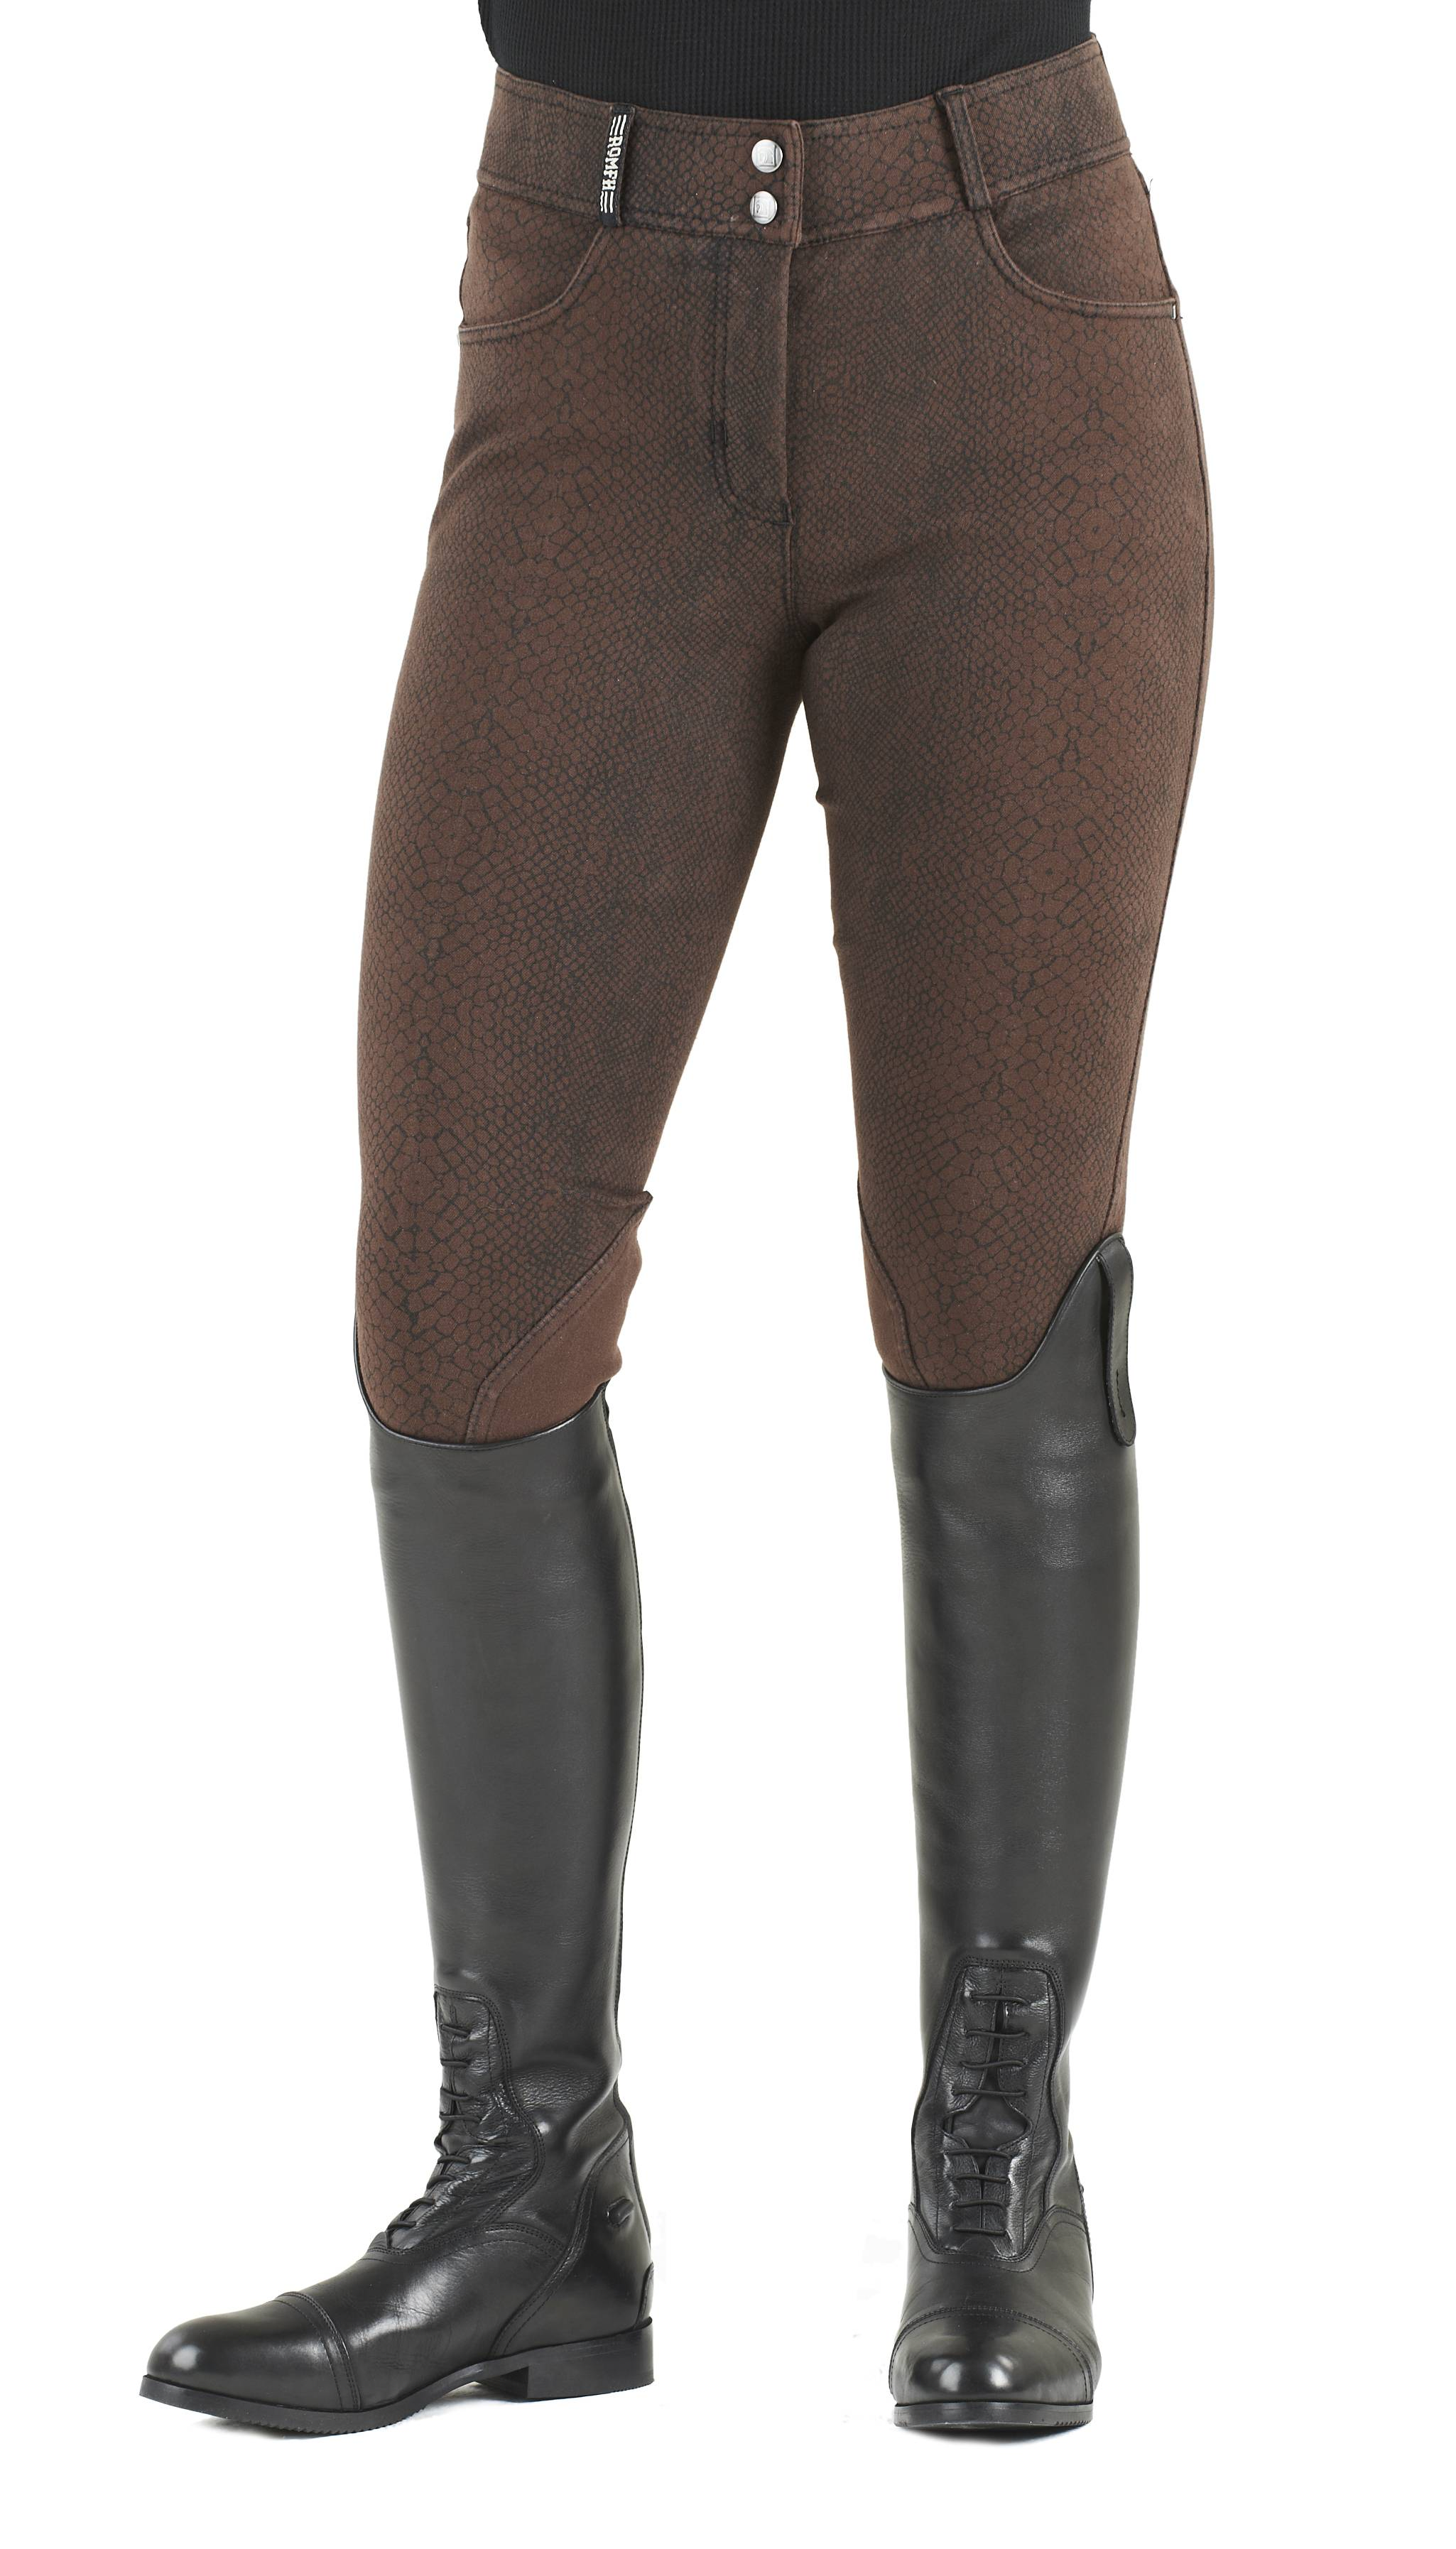 breeches ROMFH International Snakeskin Euro Seat Breech